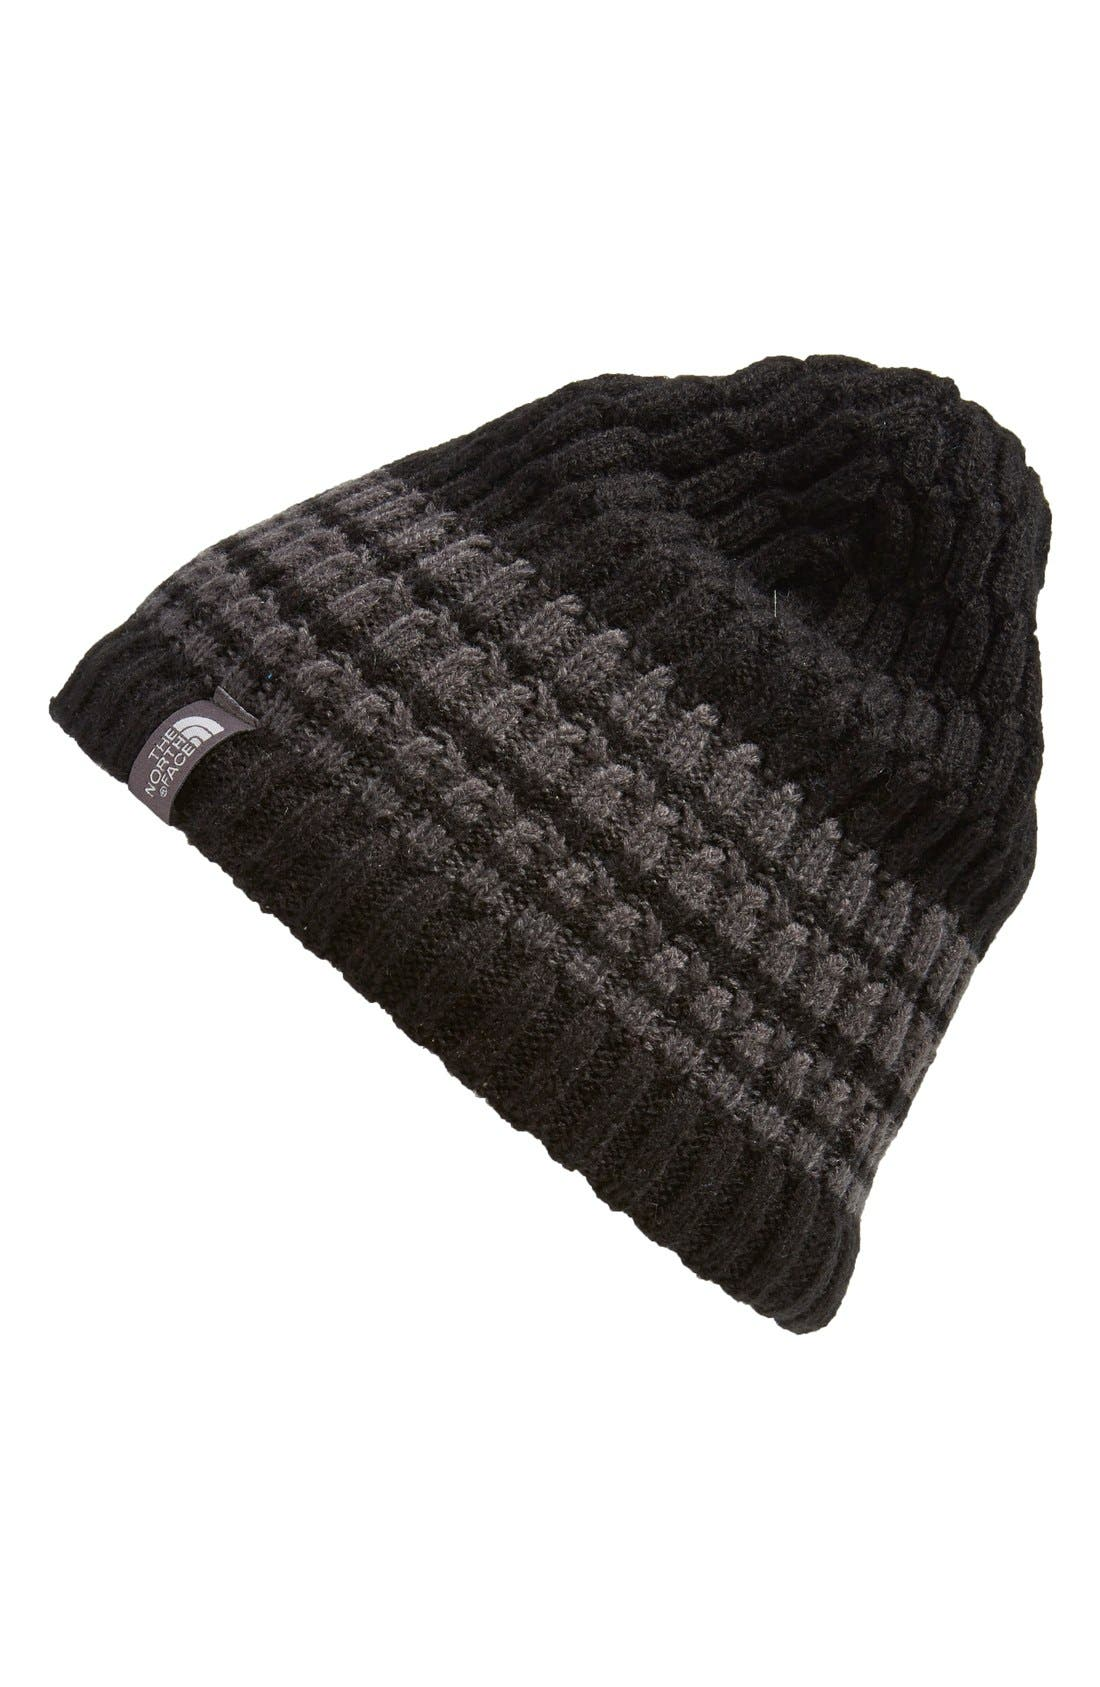 Alternate Image 1 Selected - The North Face 'The Blues' Beanie